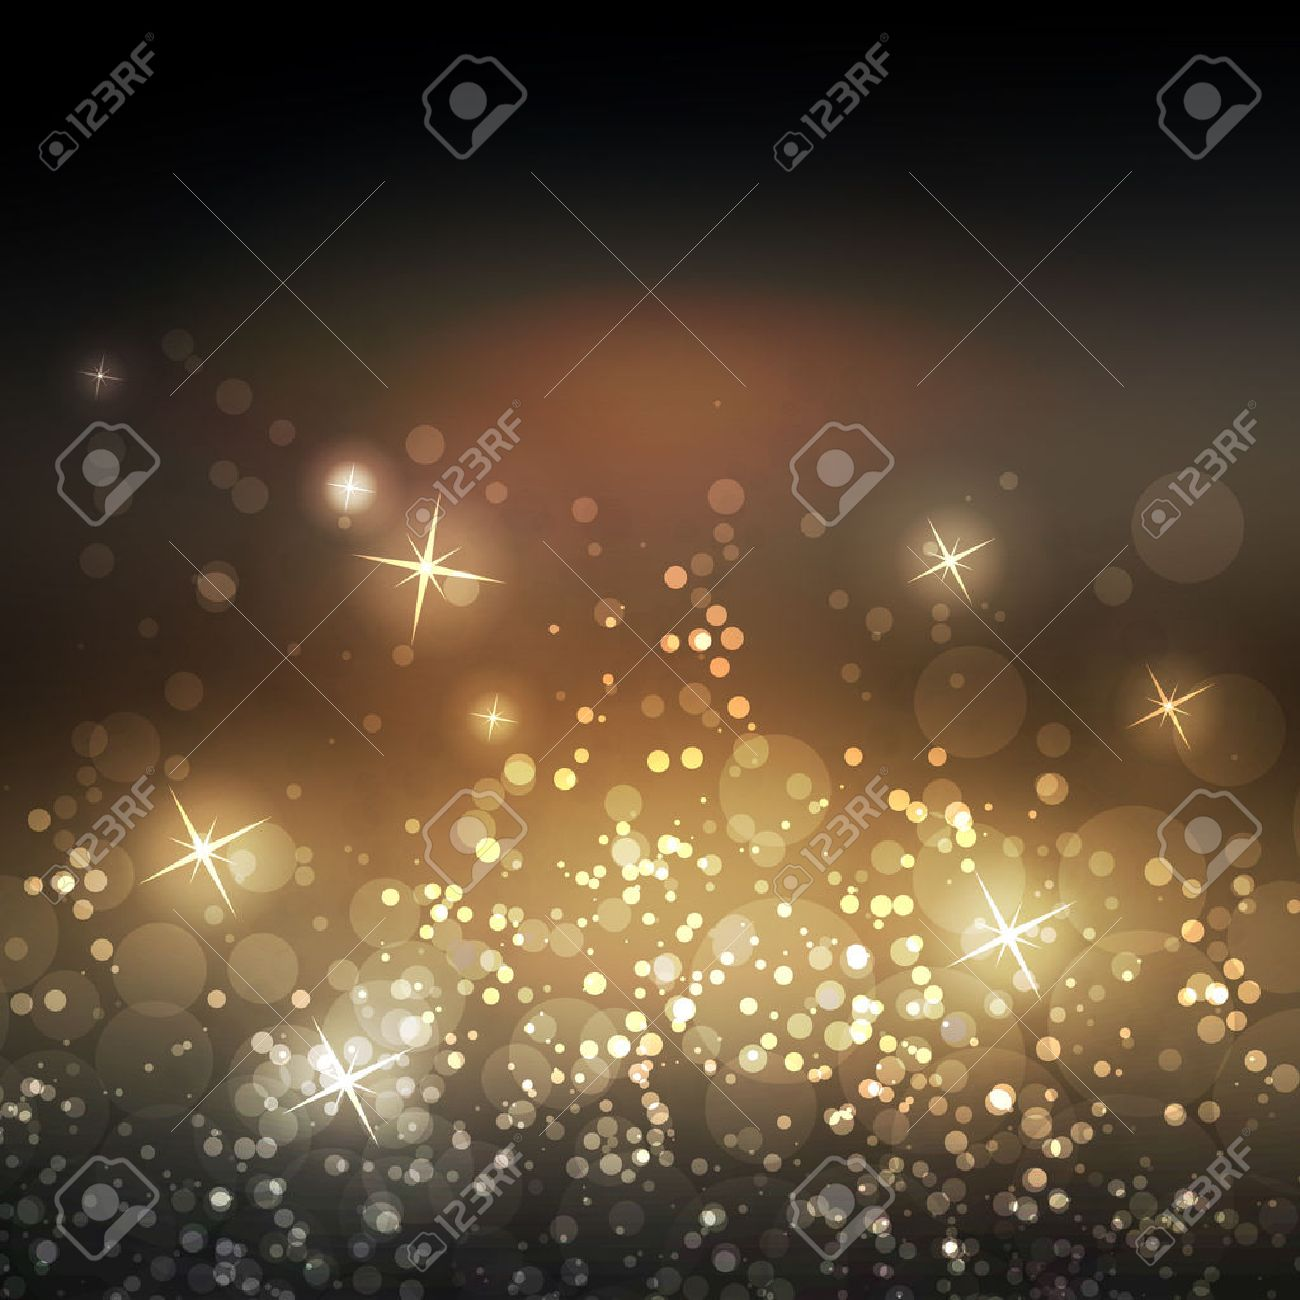 Sparkling Cover Design Template with Abstract Blurred Background - 46337383